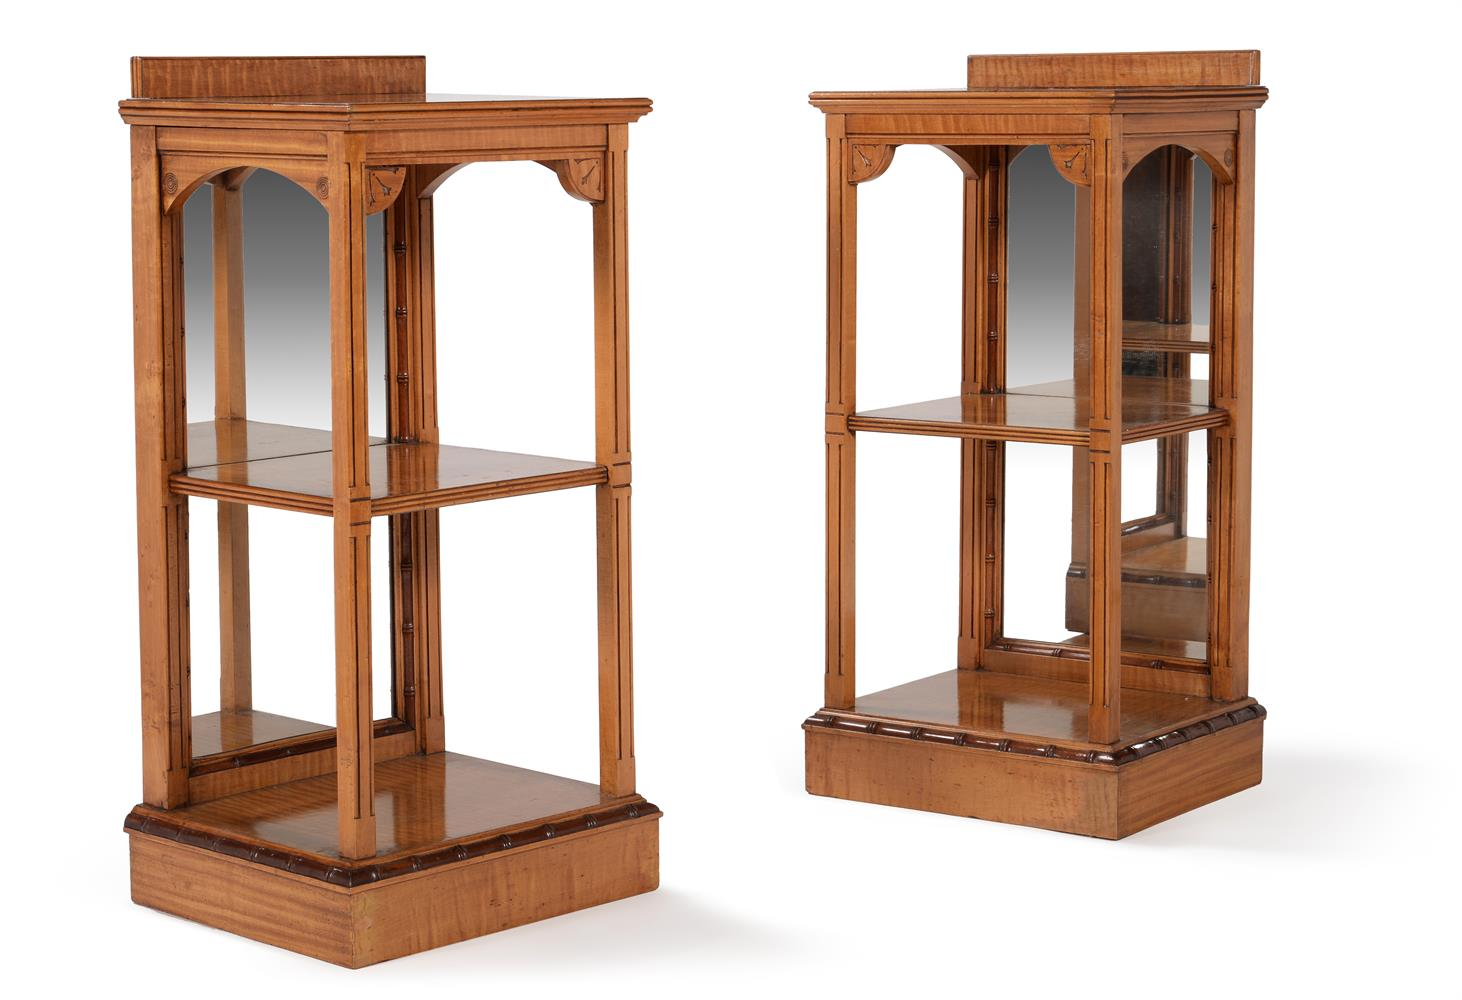 A pair of Aesthetic Movement sycamore bedside tables